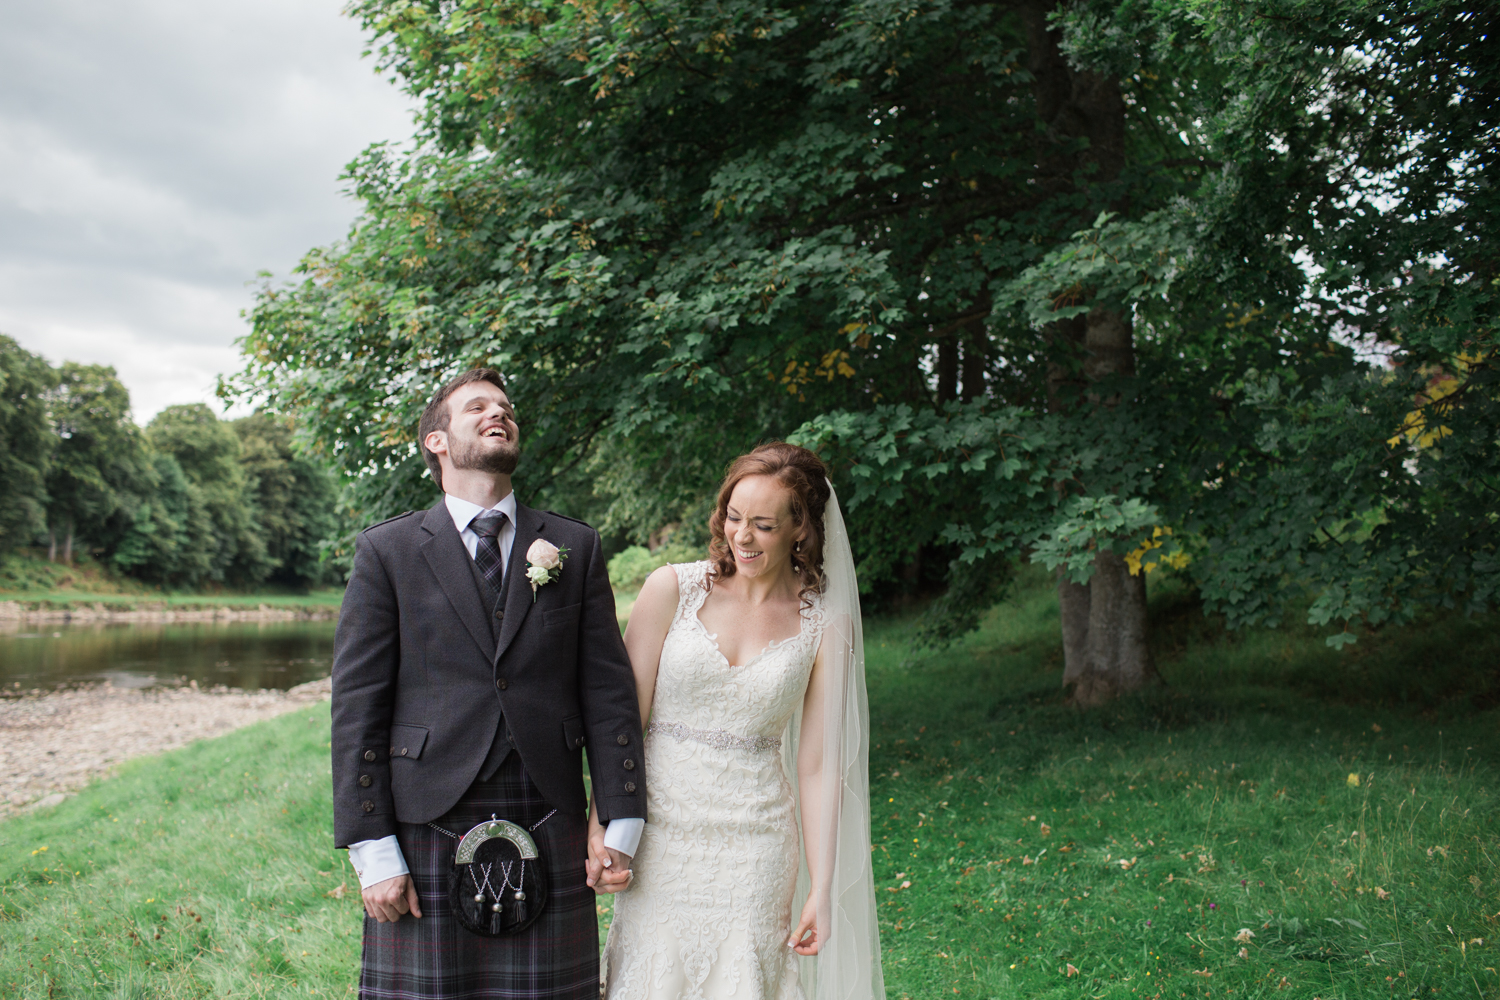 banchory lodge wedding, Banchory lodge wedding Aberdeenshire, Banchory lodge bride, weddings at Banchory lodge, Vivienne Elizabeth Photography, wedding photographers aberdeen, wedding photography aberdeen